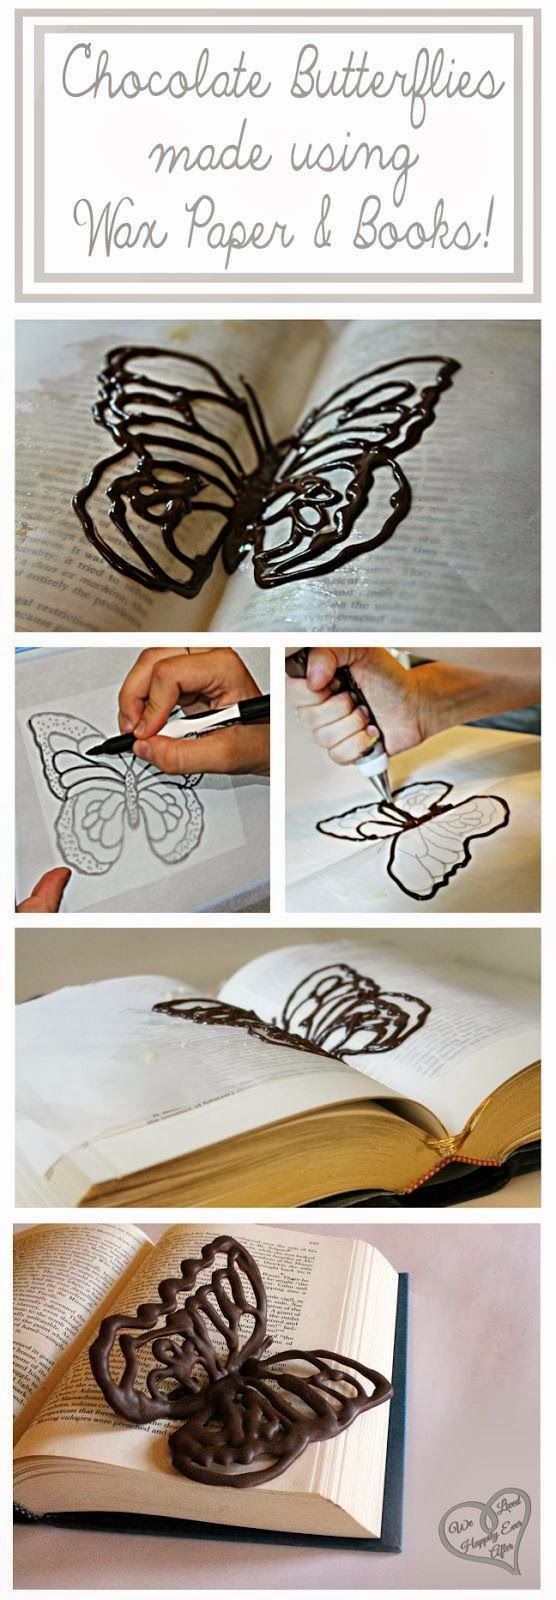 FunStocki: Make Chocolate Butterflies Using Wax Paper and Books!